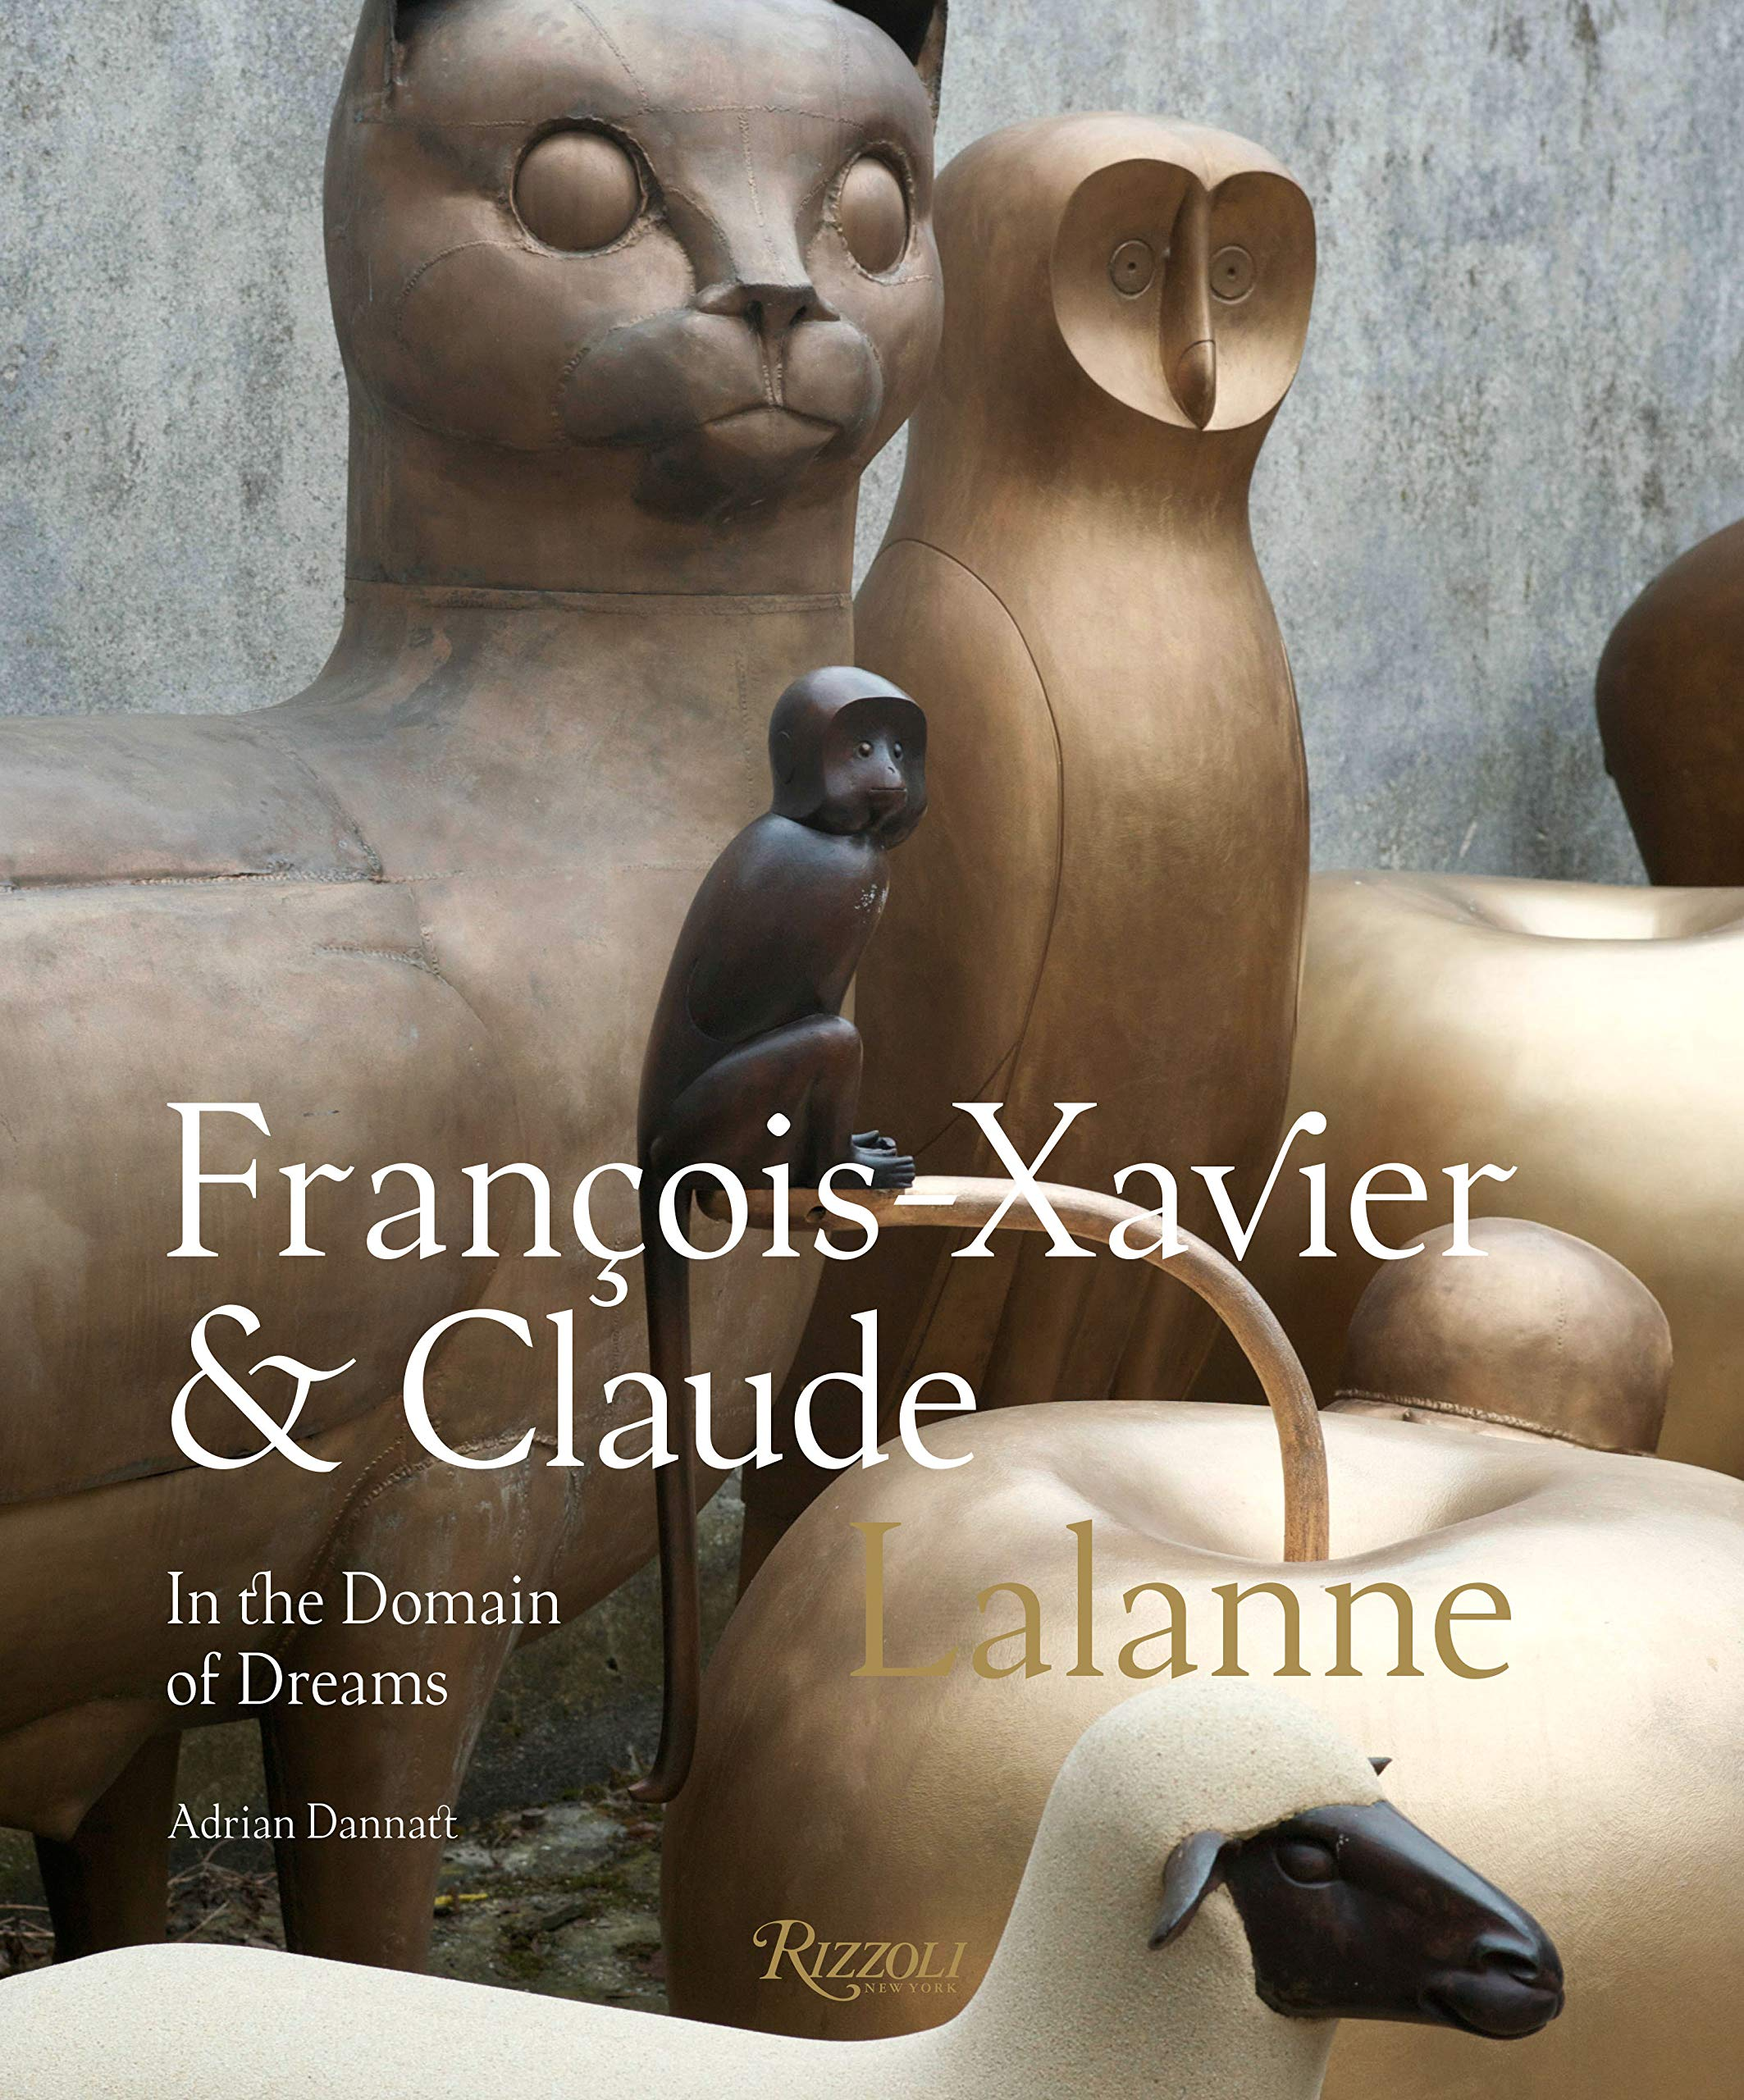 Francois-Xavier and Claude Lalanne: In the Domain of Dreams by Rizzoli